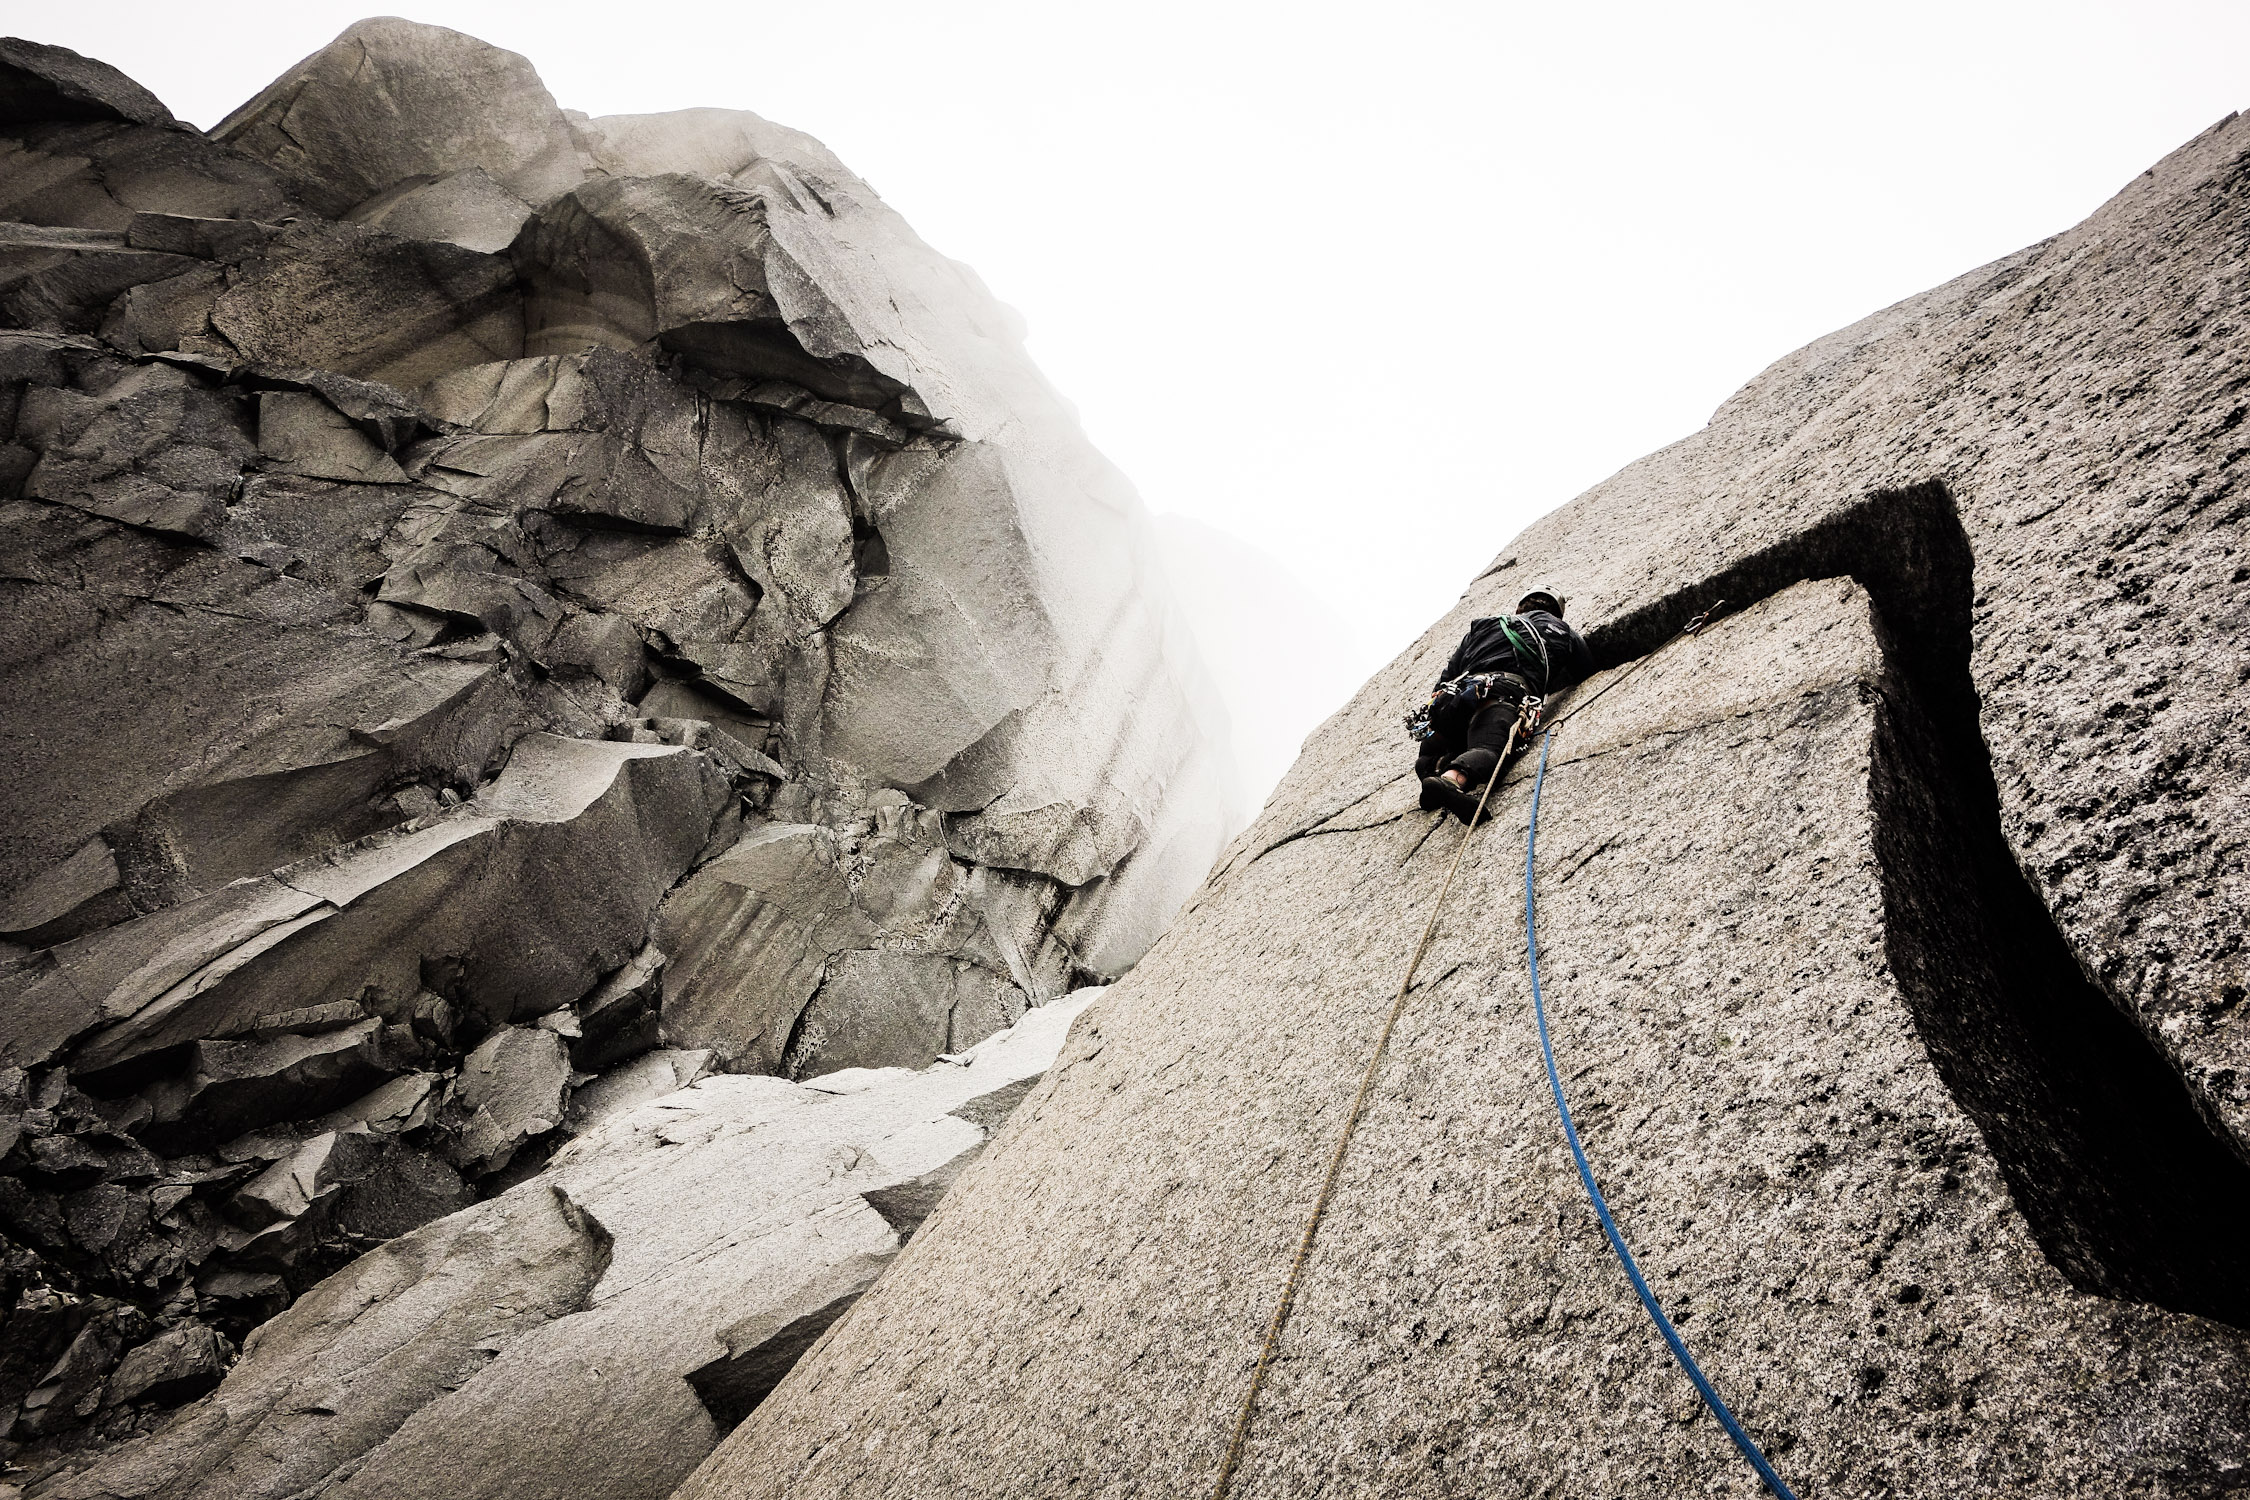 Siete Venas – A Wild Journey on Steep Granite in an Ever Changing ...